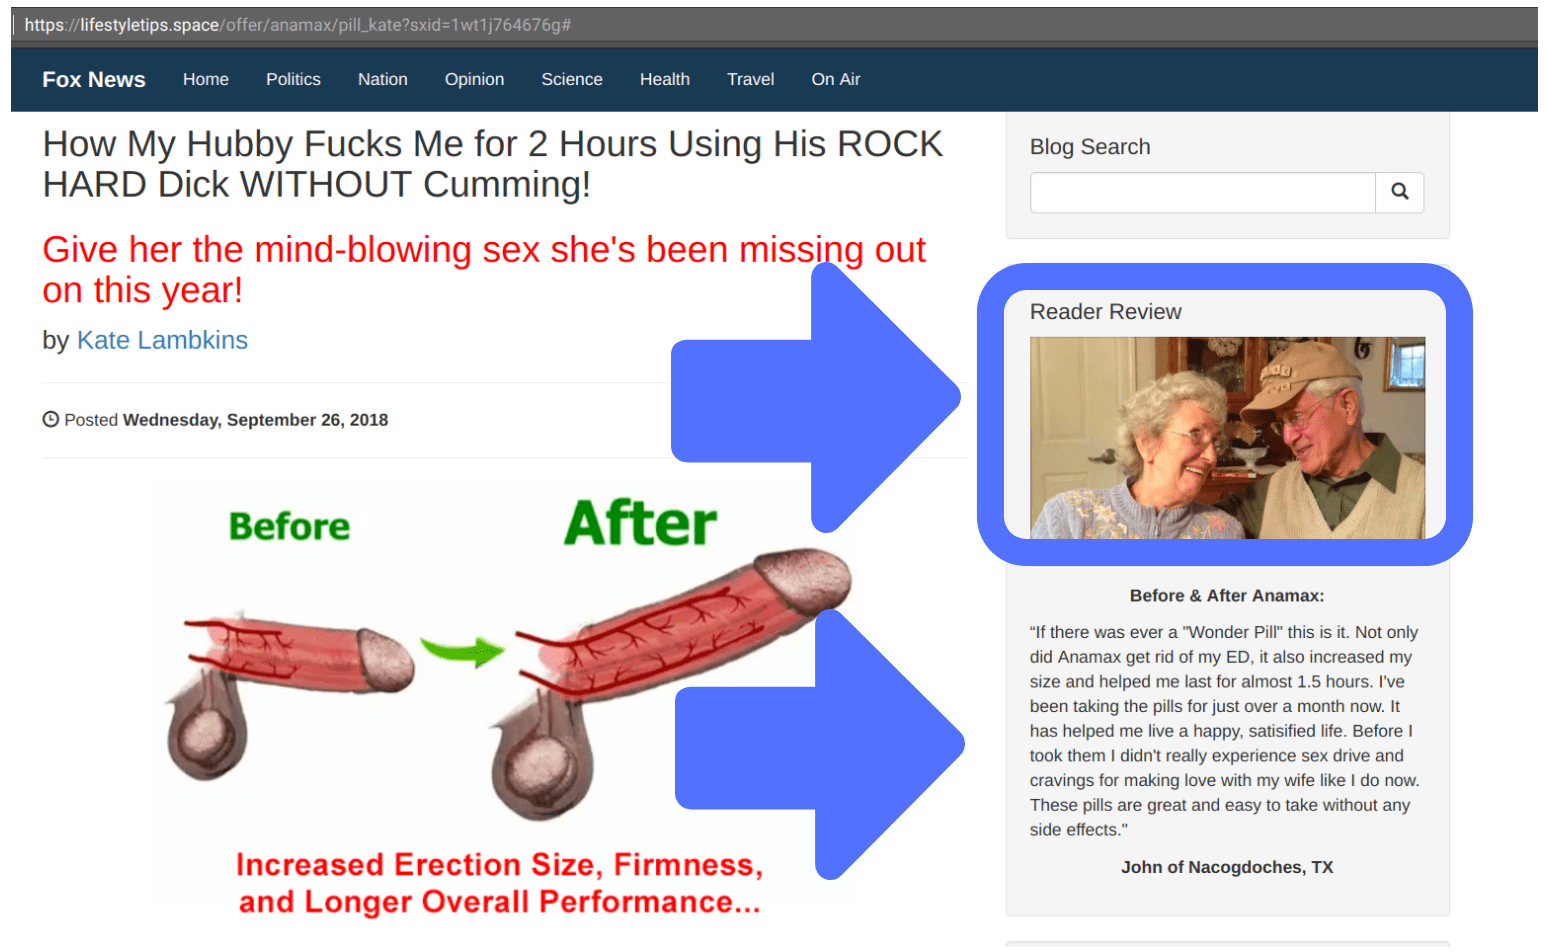 Amadex uses an elderly couple as a fake testimonial to sell their male sex enhancement pills